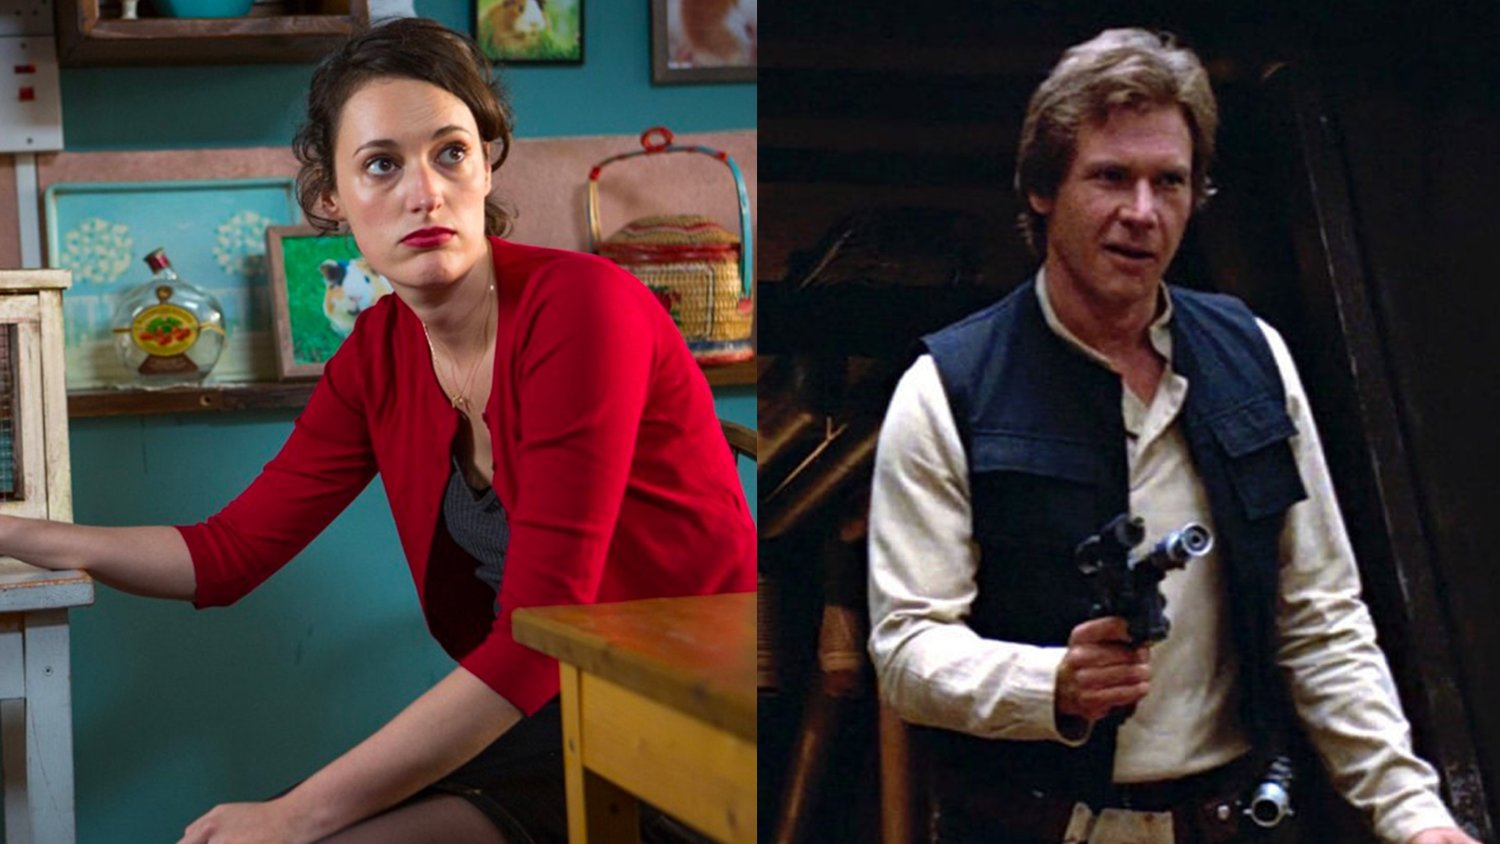 The HAN SOLO Movie Is Getting a New Alien or Droid Character Played by Phoebe Waller-Bridge